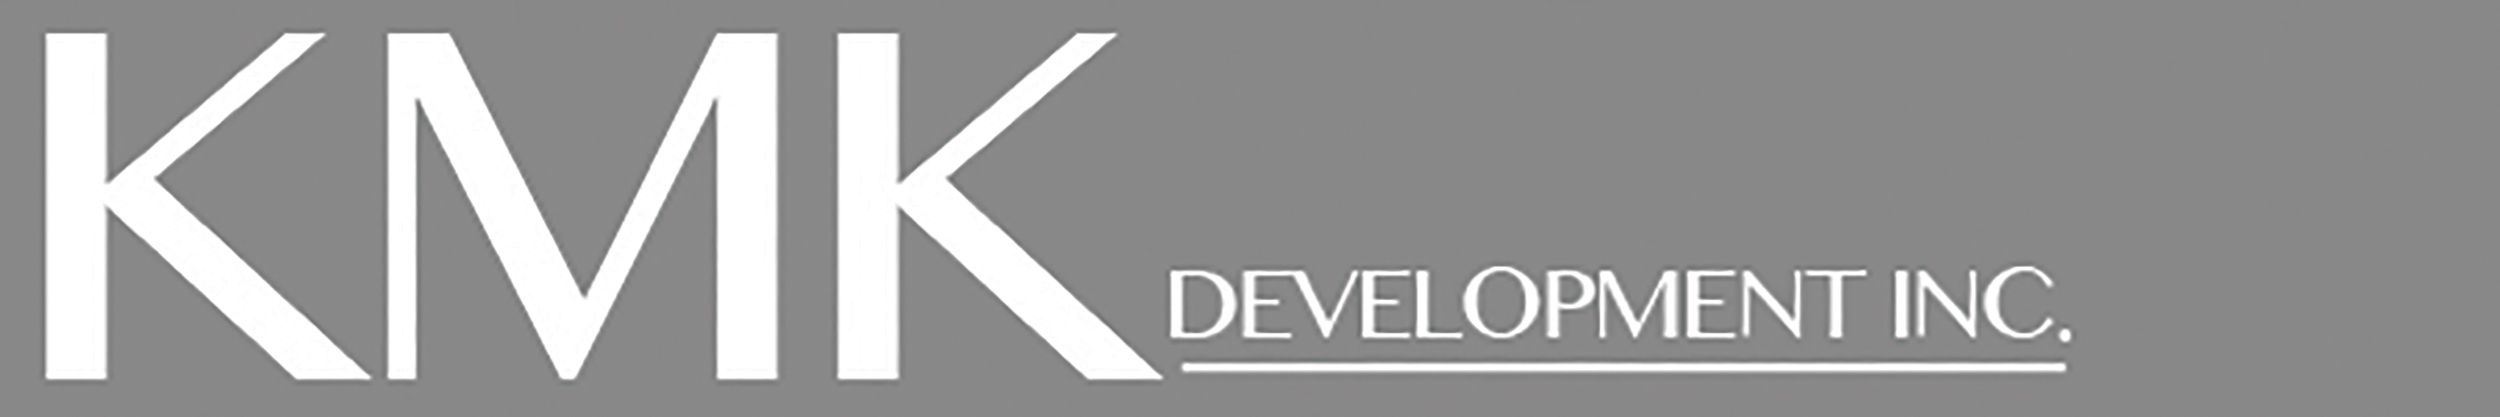 KMK Development